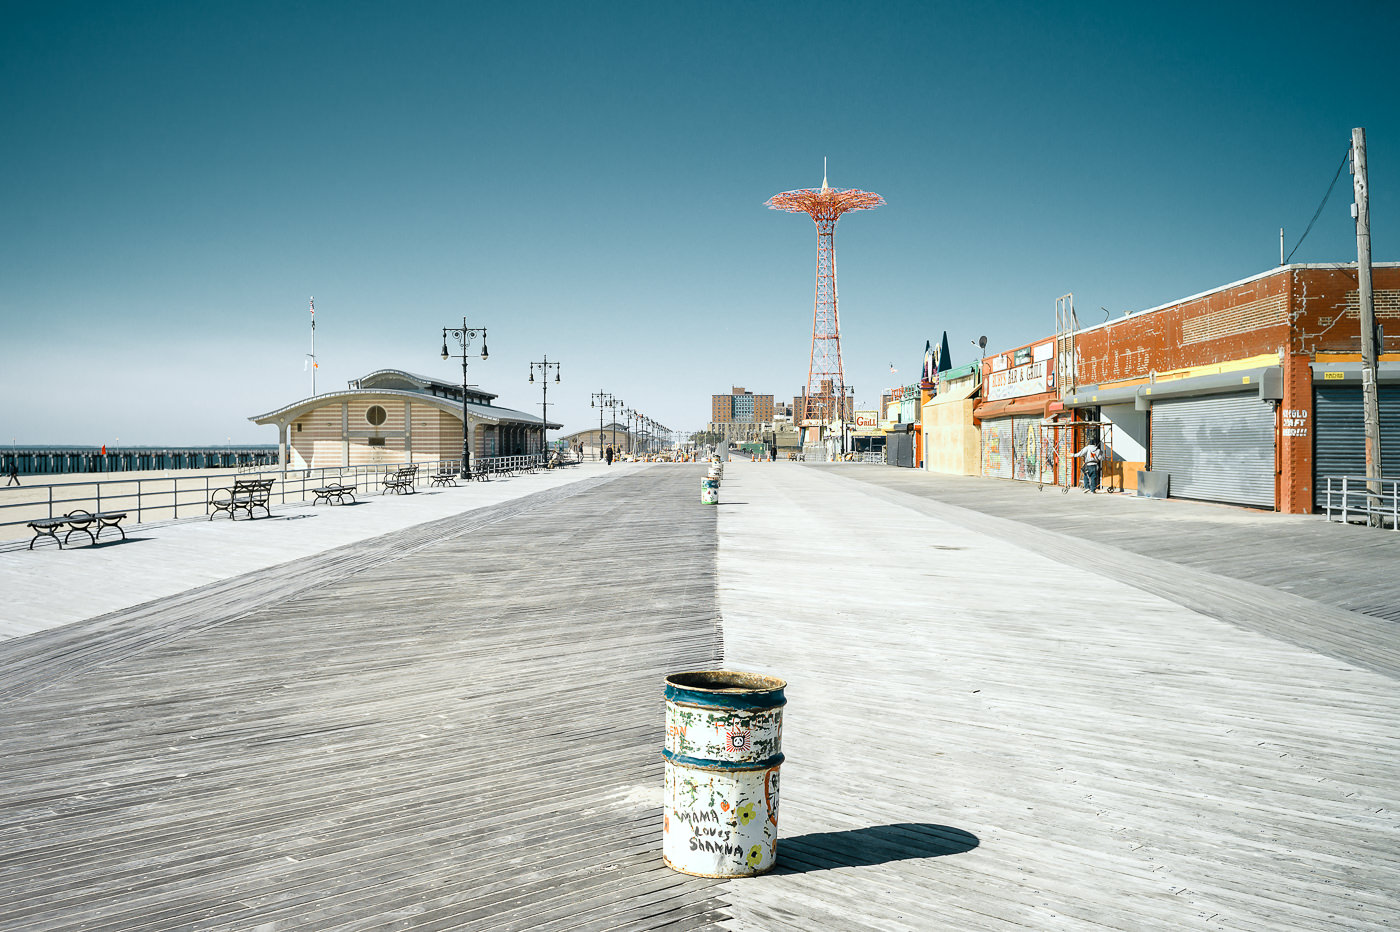 2012 - Coney Island, Brooklyn, USA